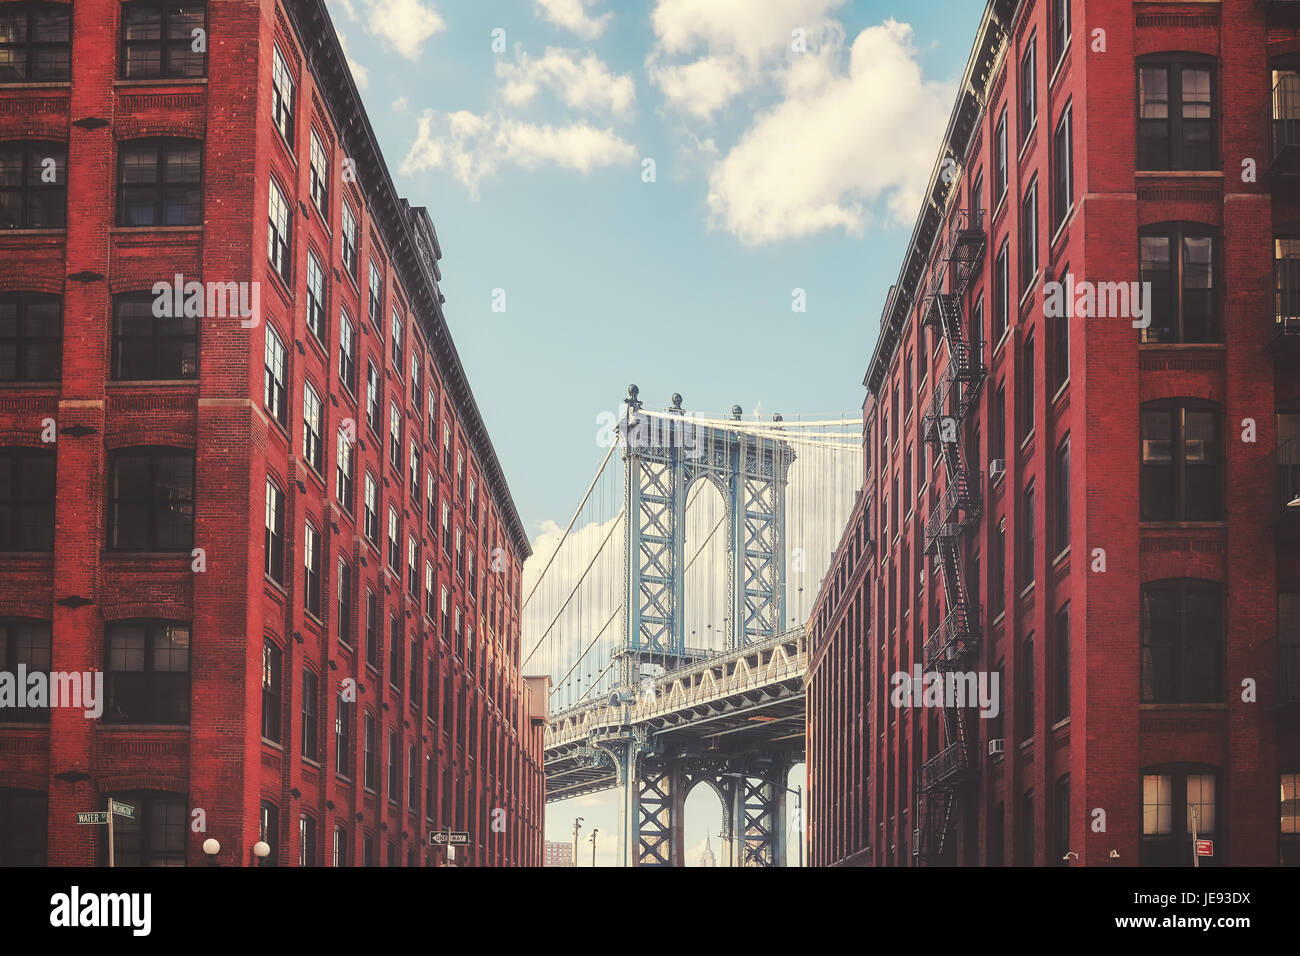 Color toned picture of Manhattan Bridge seen from Dumbo, New York City, USA. - Stock Image